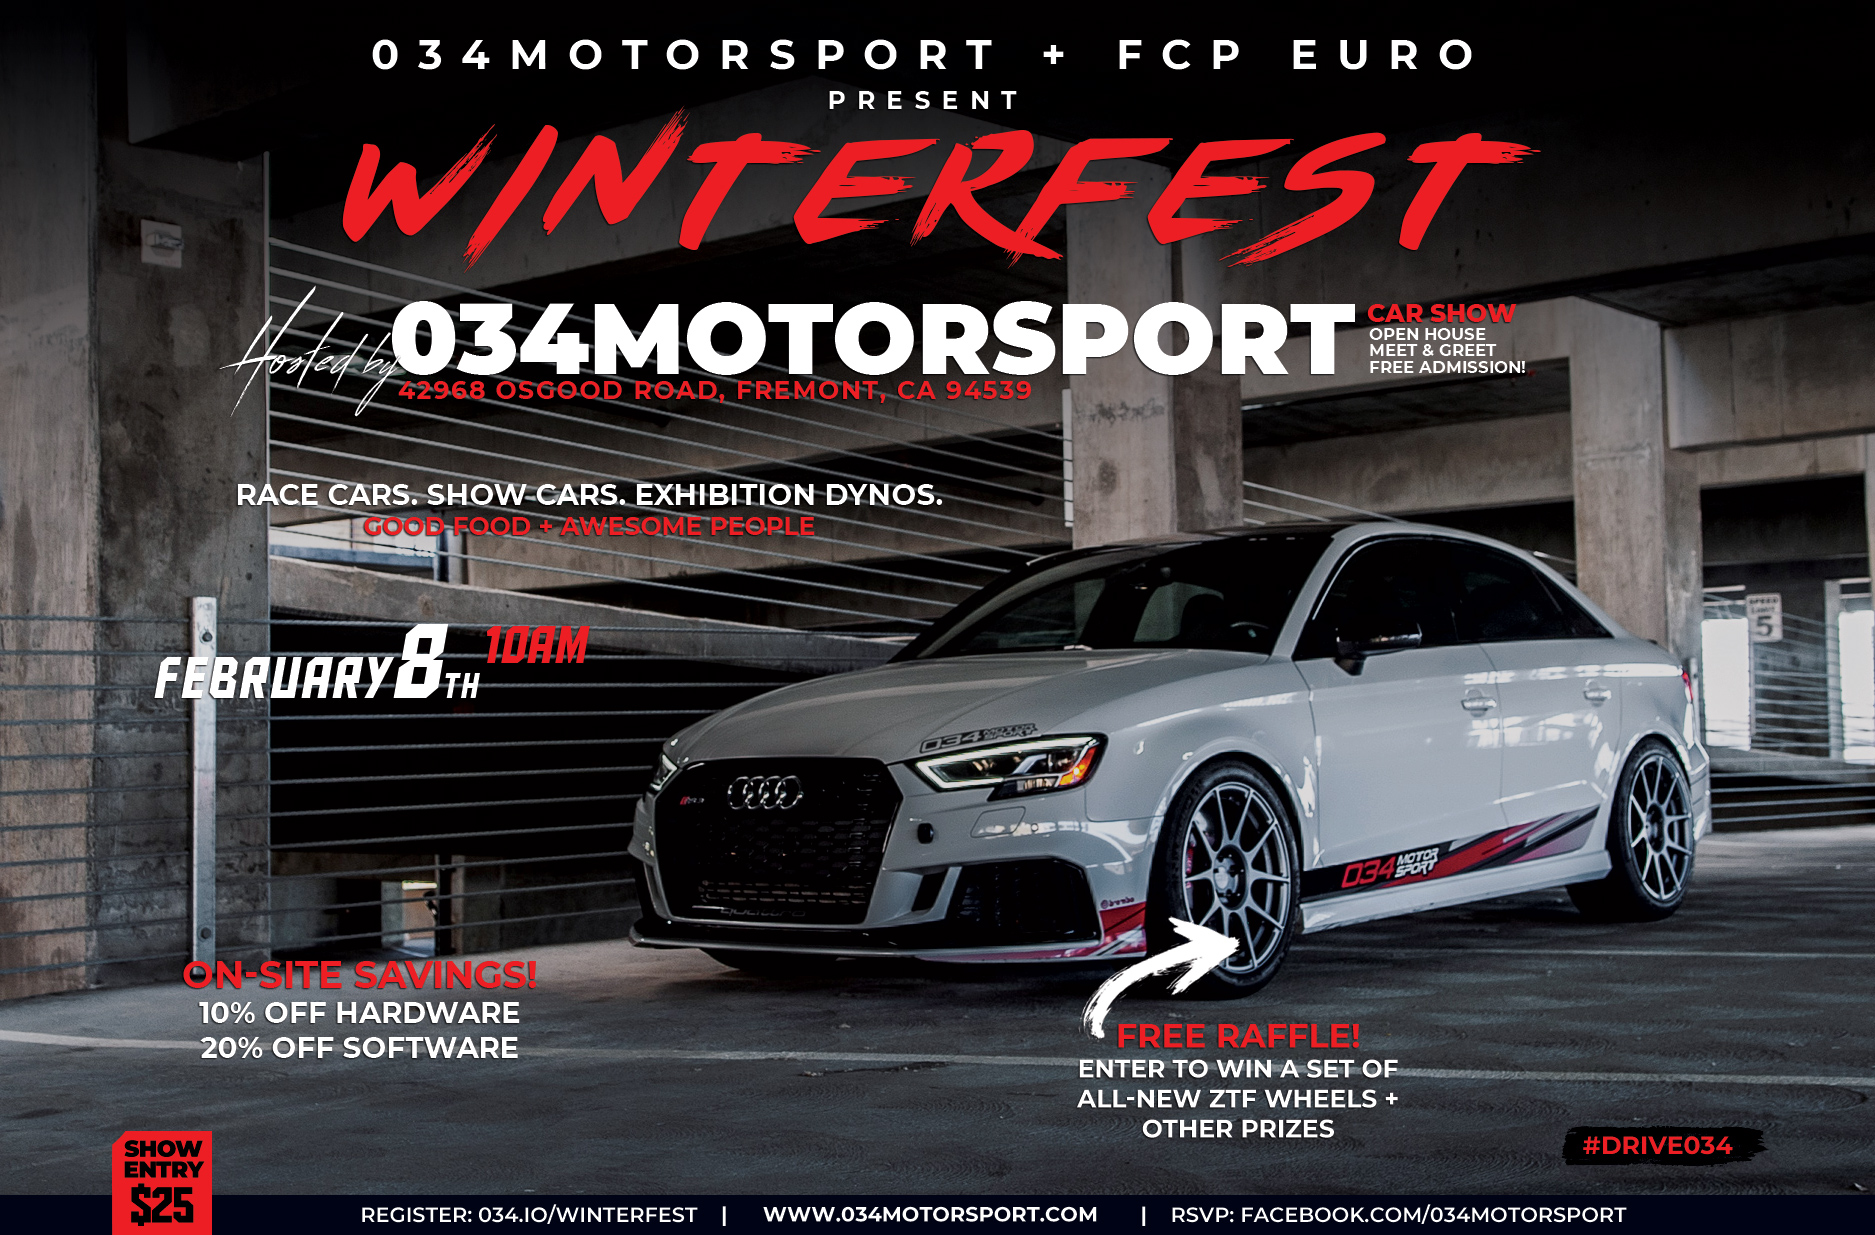 WinterFest 2020 - Audi/Volkswagen Car Show, Open House, and Get Together at 034Motorsport in Fremont, CA